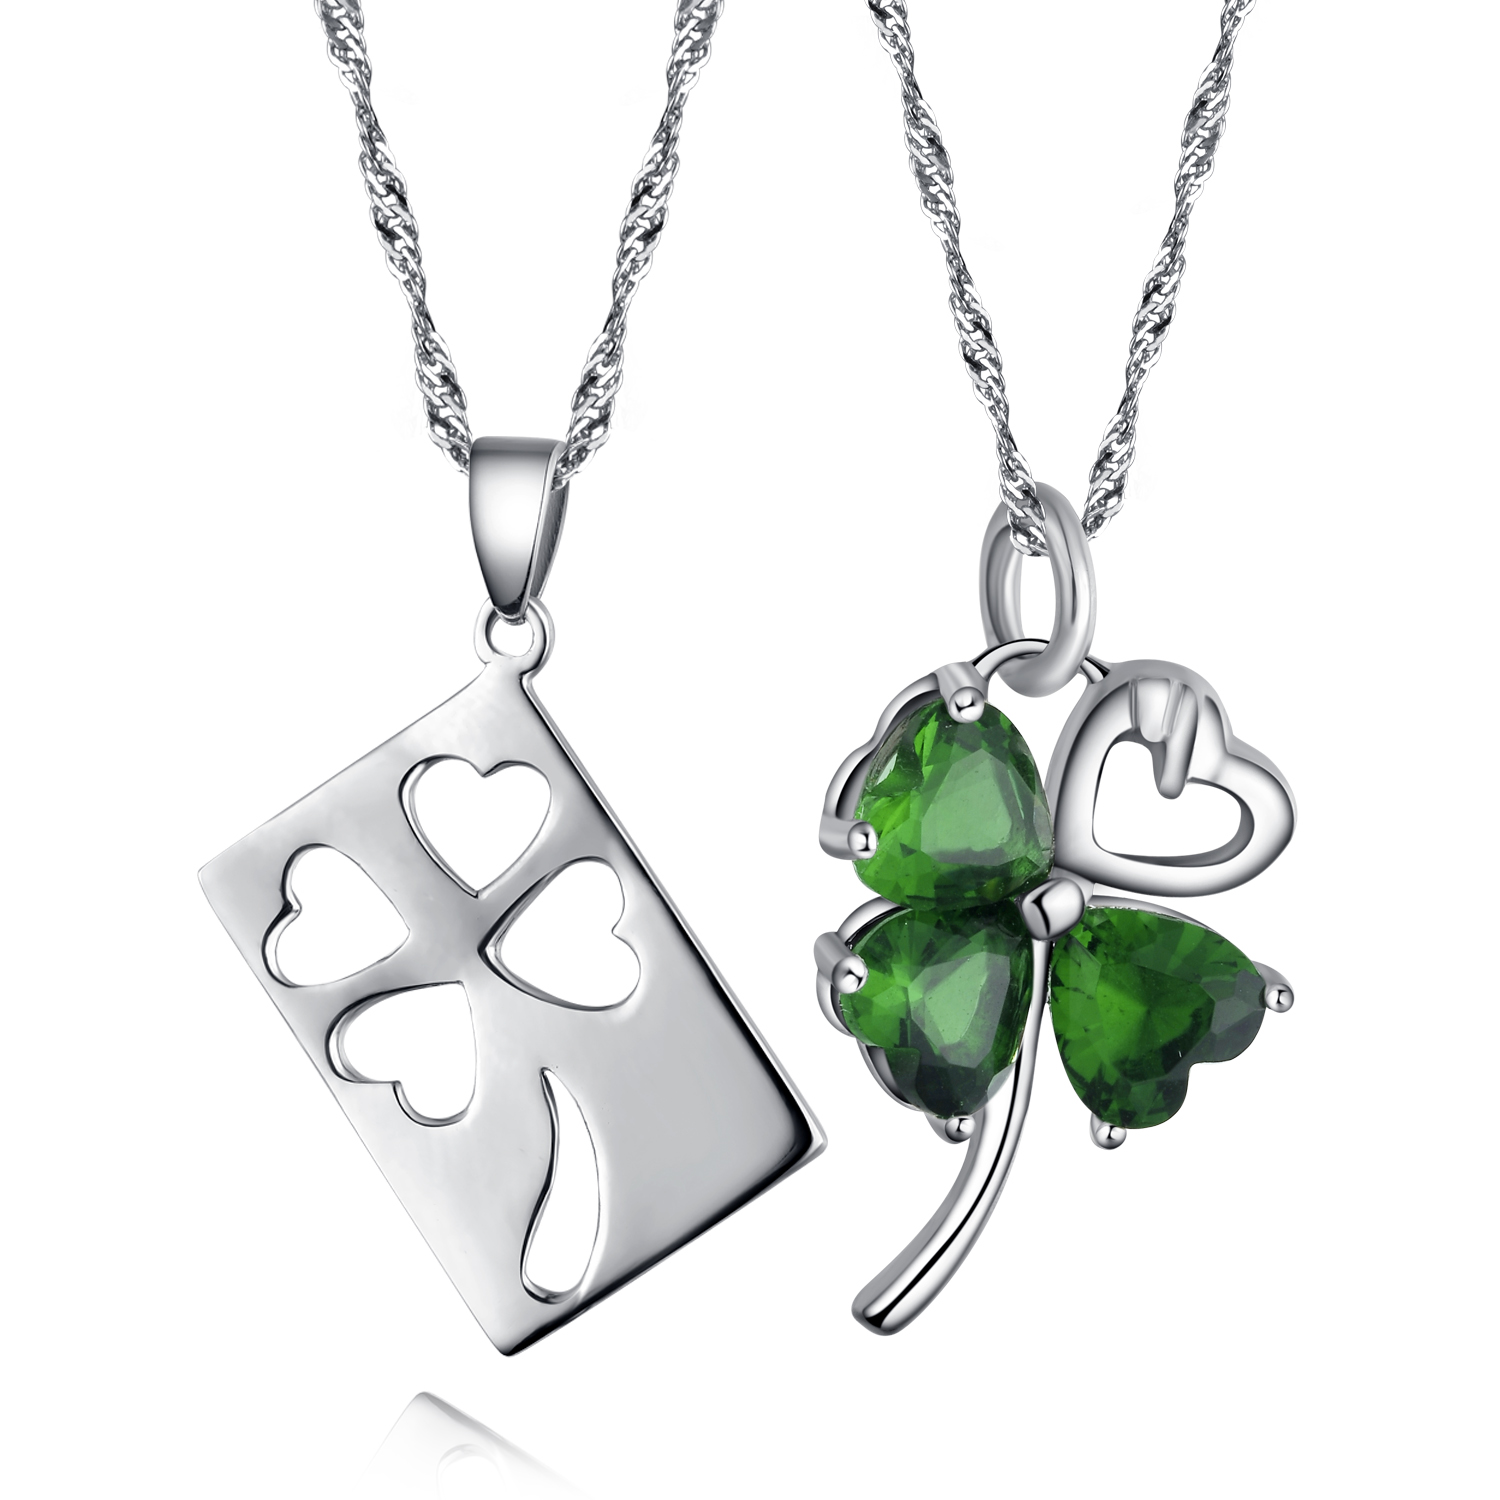 jewelry cetic aoife elegance leaf eleganceceltic necklace celtic clover sterling product silver four